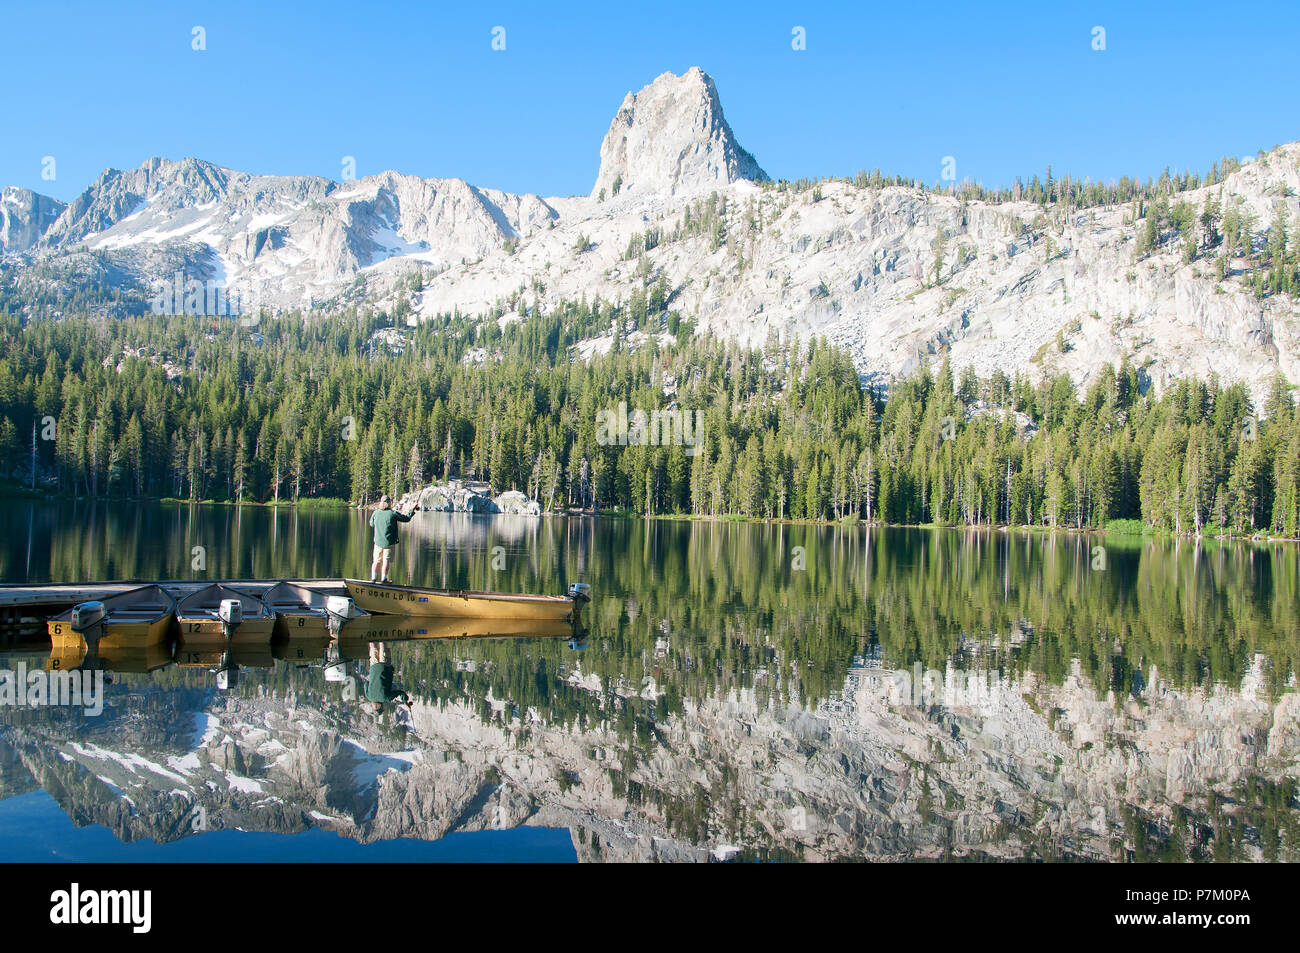 Gorgeous George Lake in the Mammoth Lakes Basin, California offers